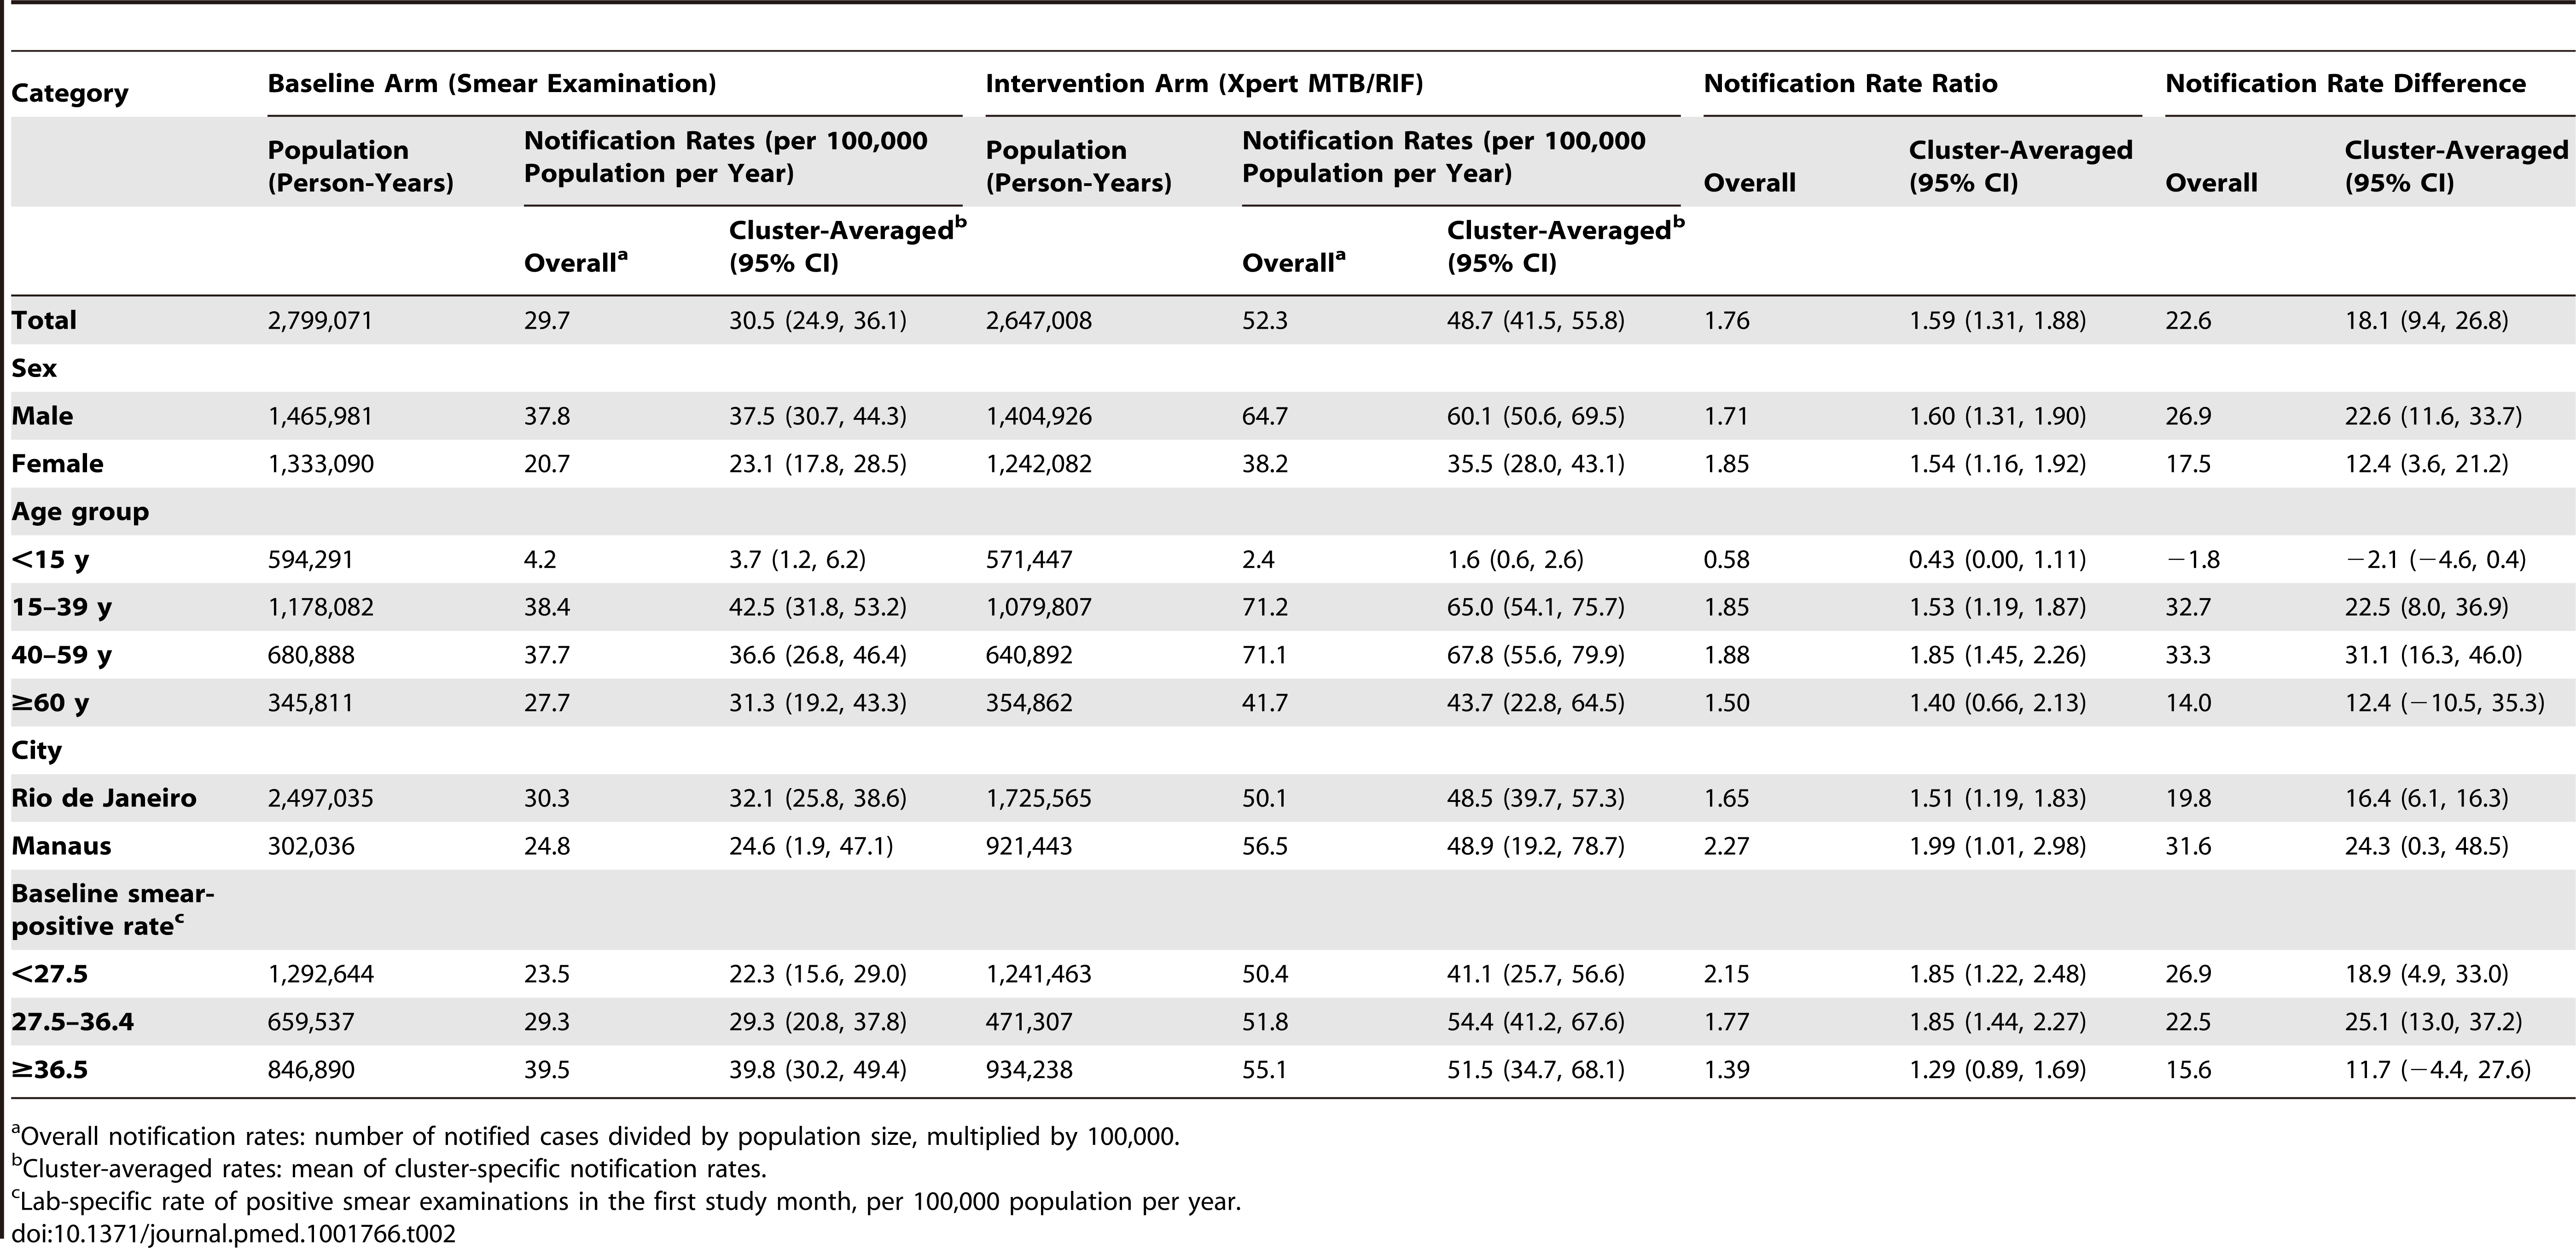 Notifications of laboratory-confirmed pulmonary TB by arm (baseline and intervention), by sex, age, municipality, and baseline smear-positive rate.